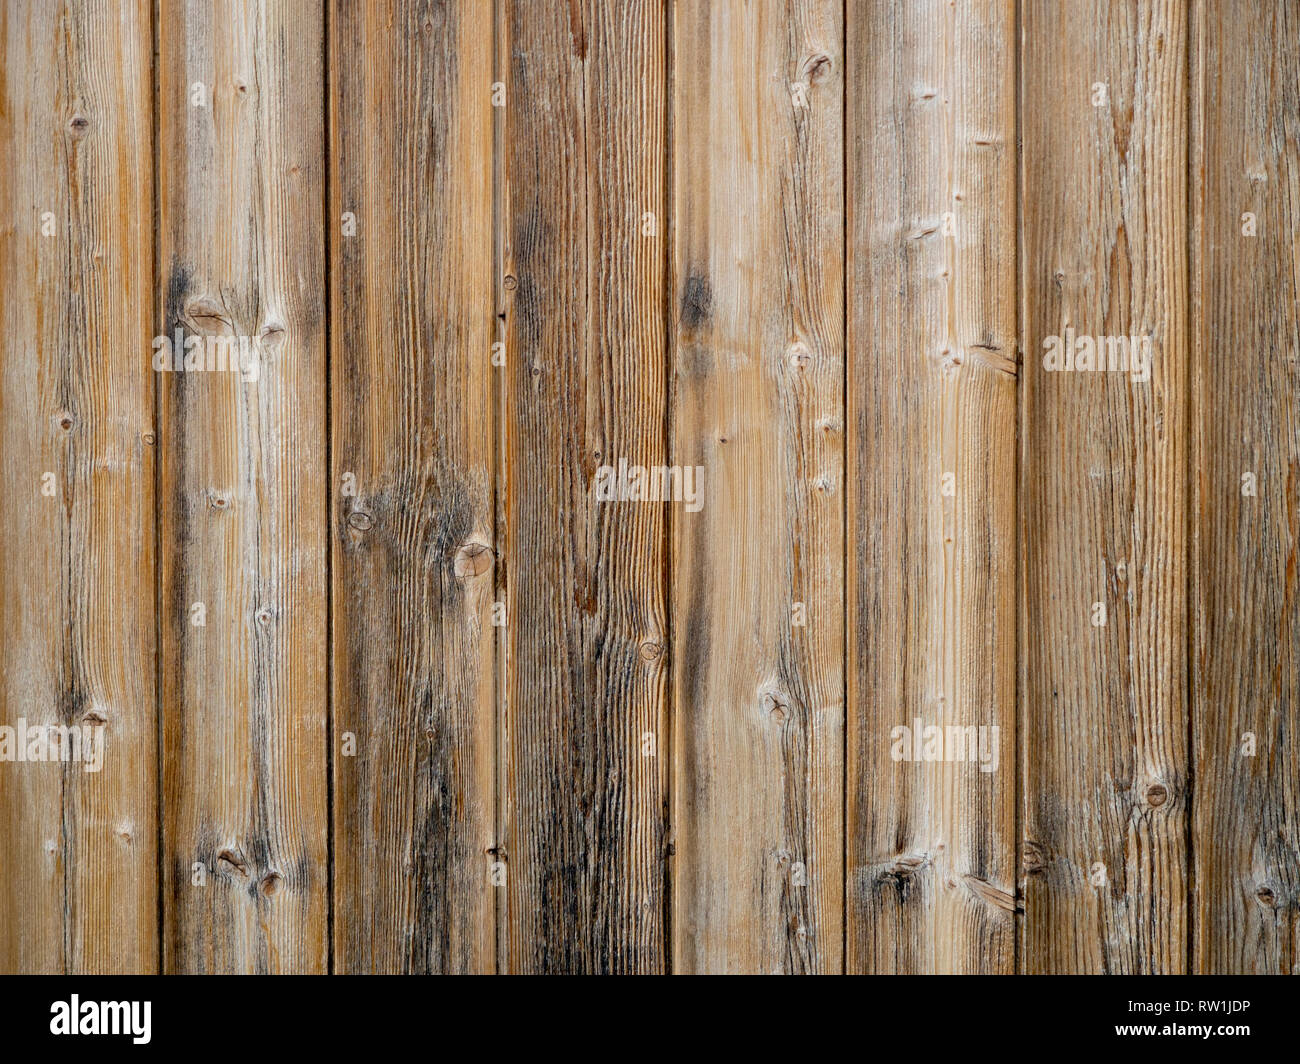 Wood slats background,old exterior cladding with vertical planks. - Stock Image